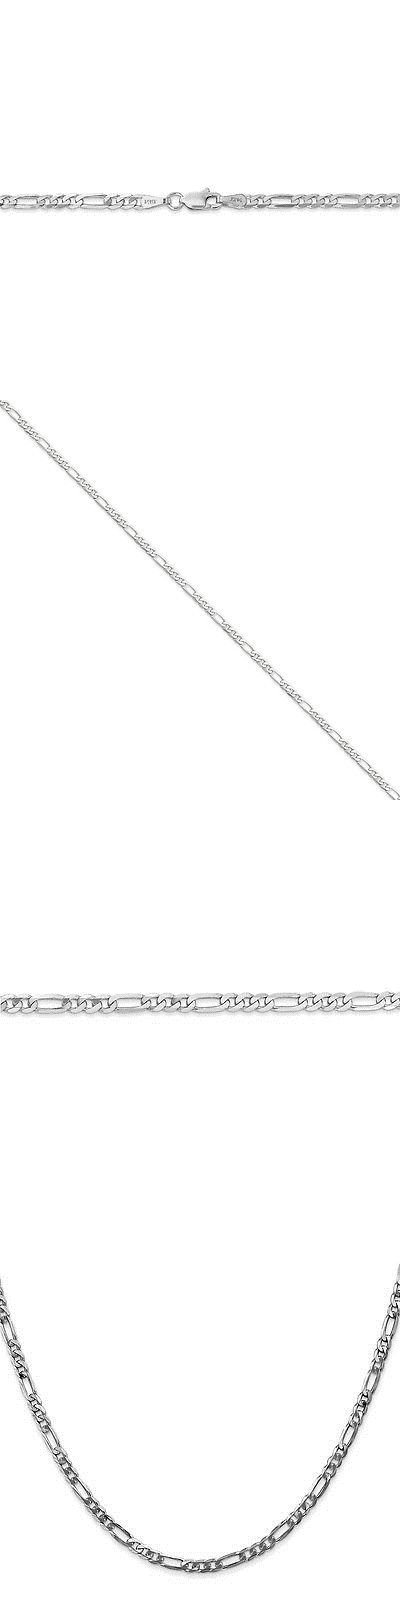 Fine Anklets 101437: Genuine 14K White Gold 3 Mm Flat Figaro Chain Anklet - 9 To 10 Inches -> BUY IT NOW ONLY: $197.99 on eBay!